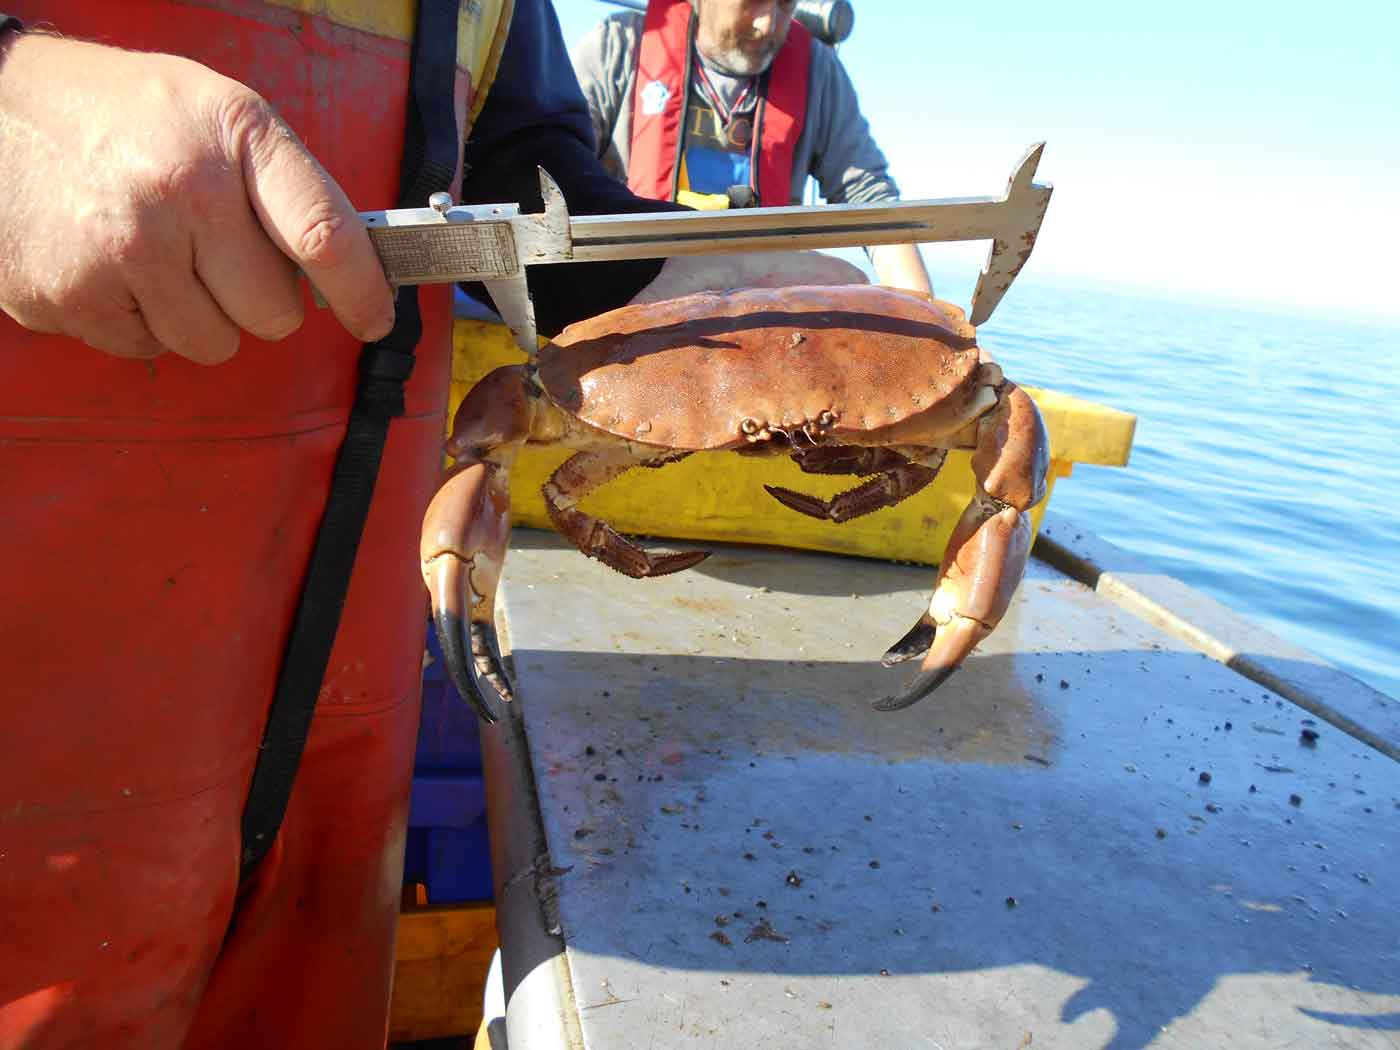 Crab being measured